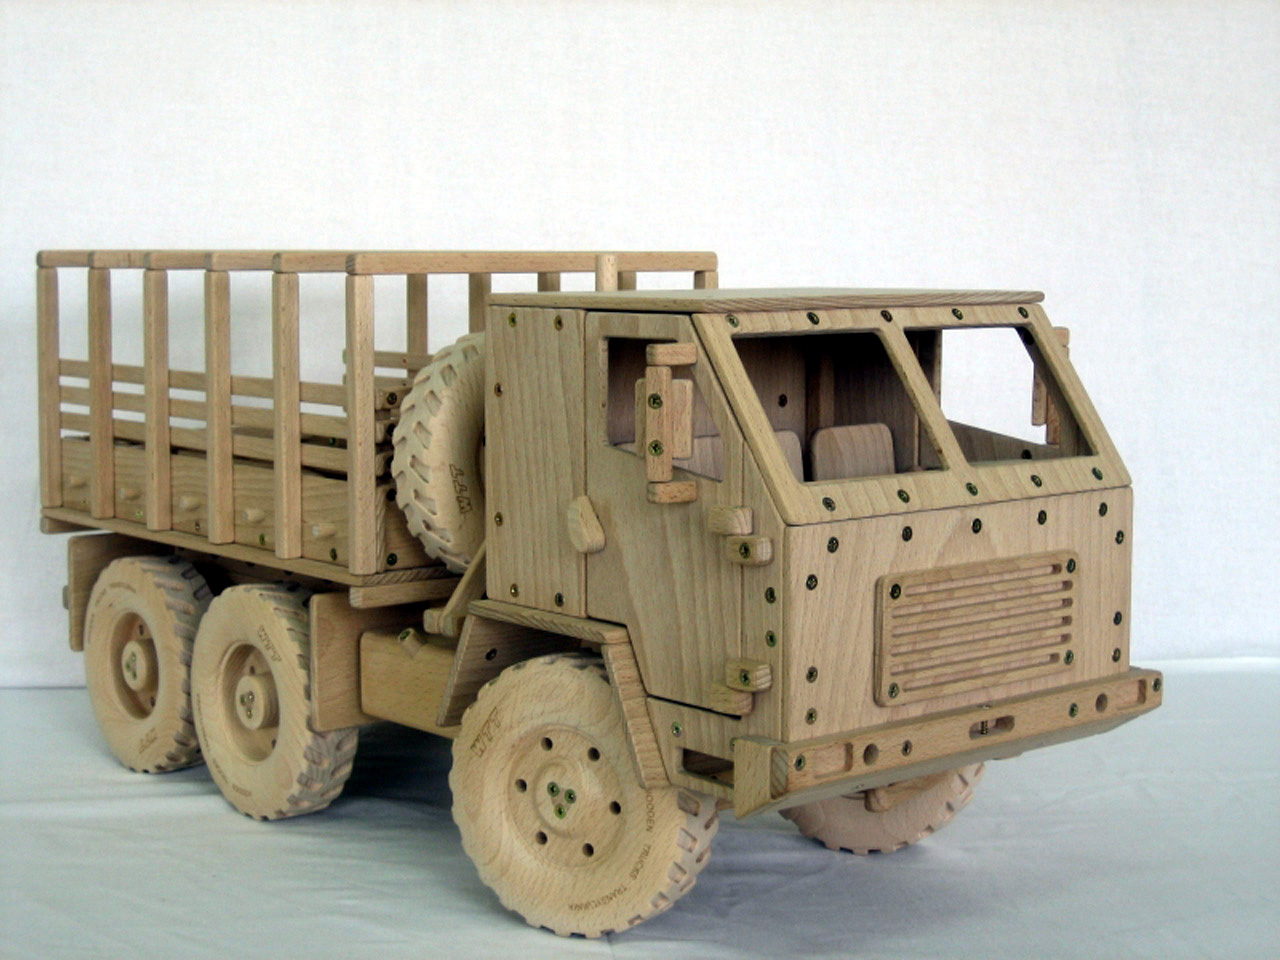 Wooden Trucks Transylvania Army Truck Photo Gallery - Autoblog